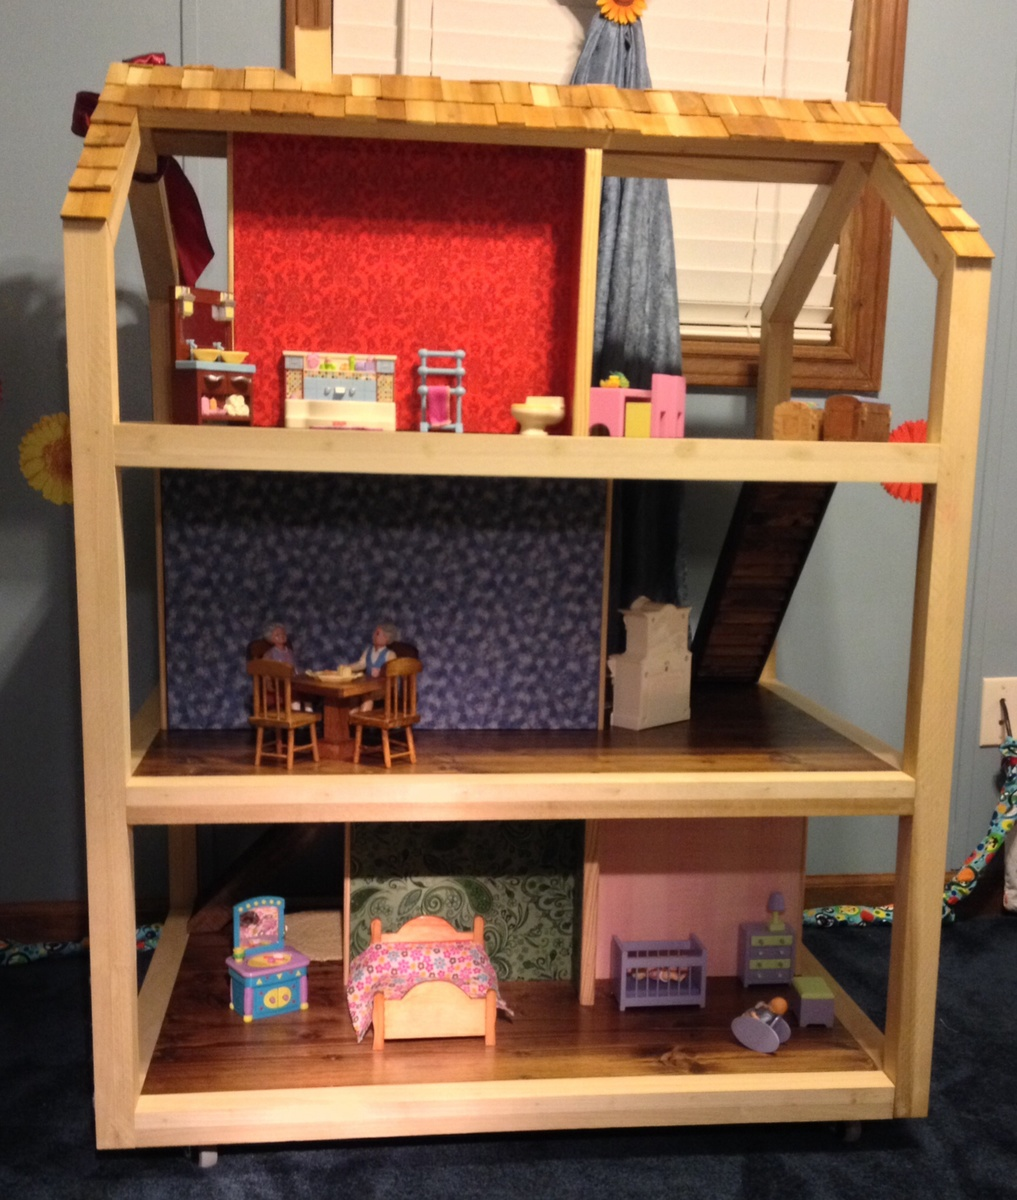 DIY Dollhouse - DIY Projects